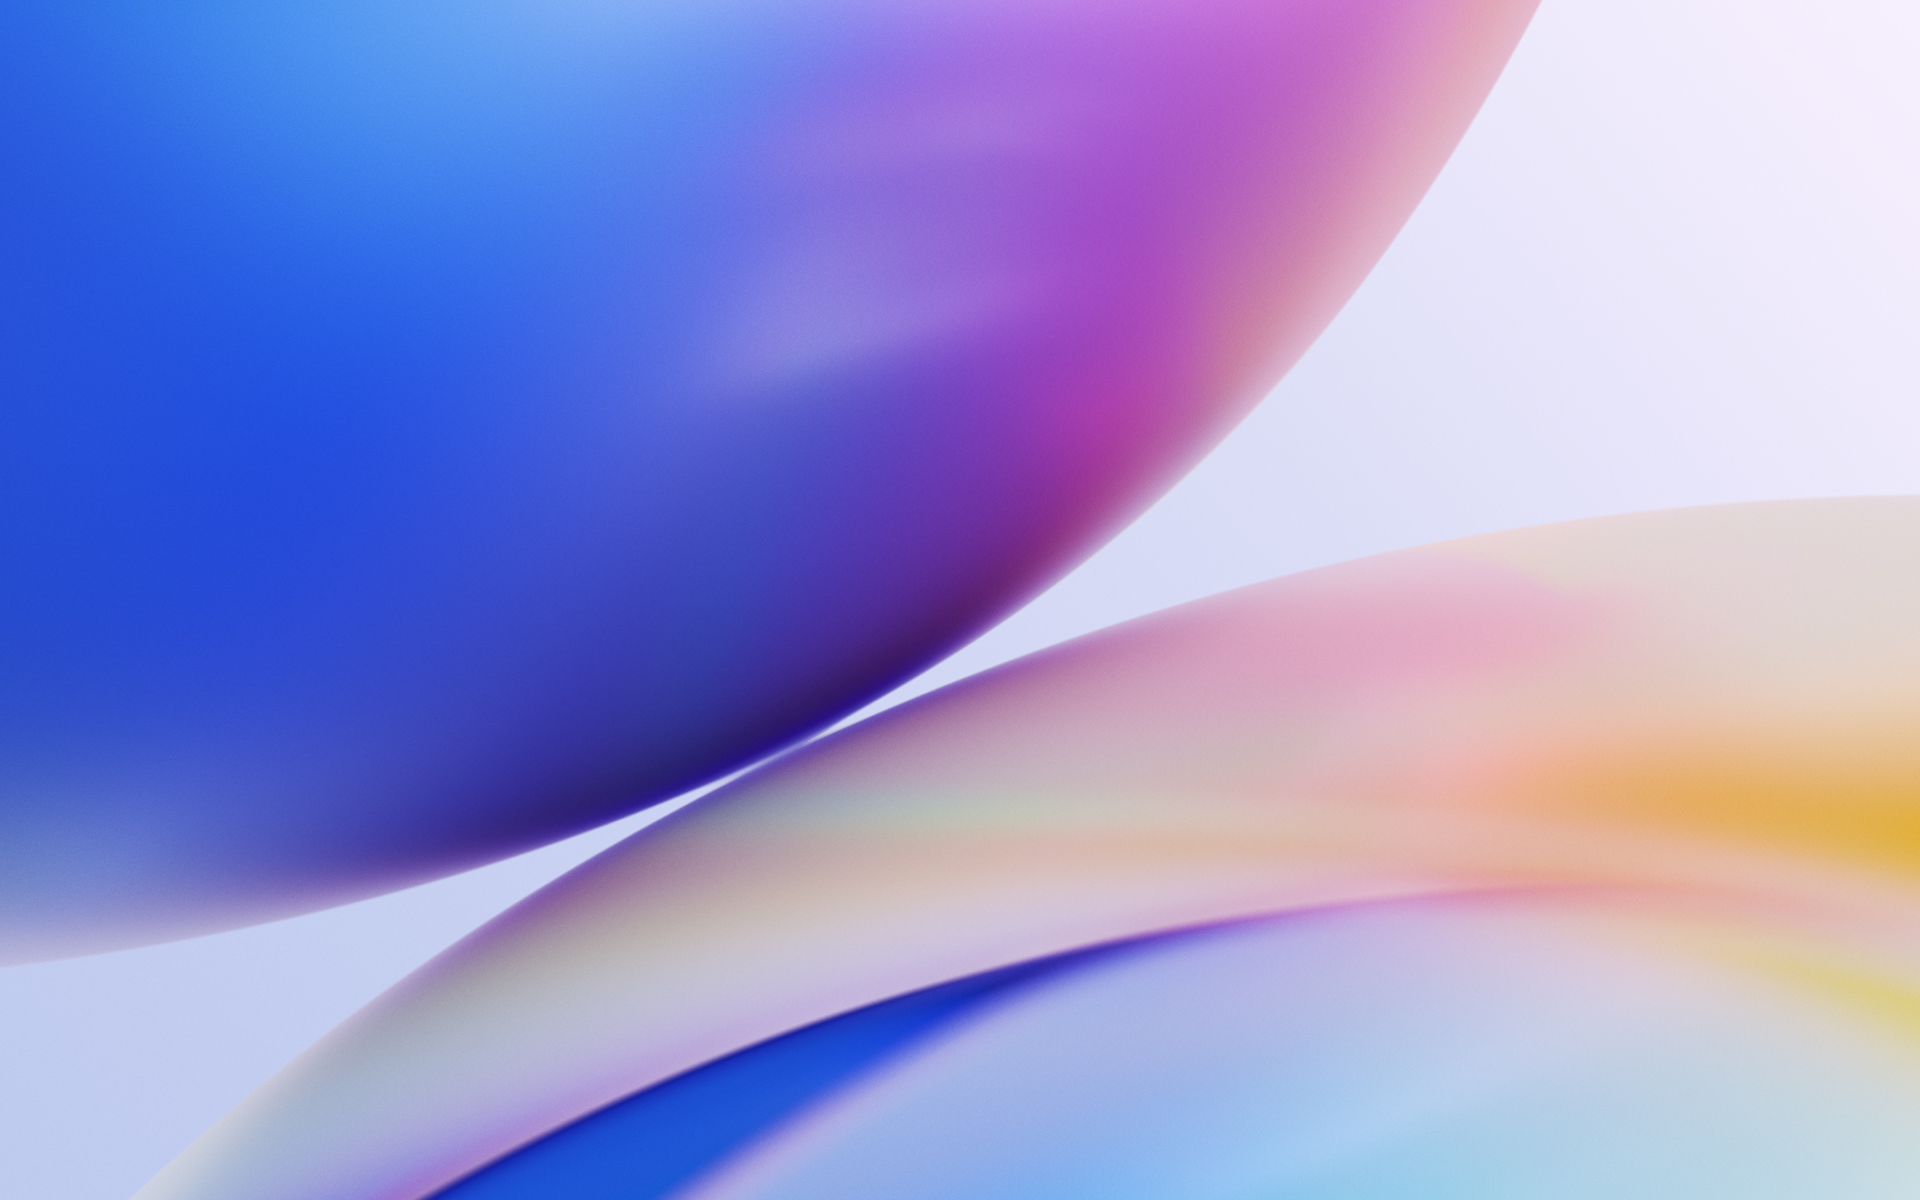 1920x1200 OnePlus 8 Pro 1200P Wallpaper, HD Abstract 4K ...